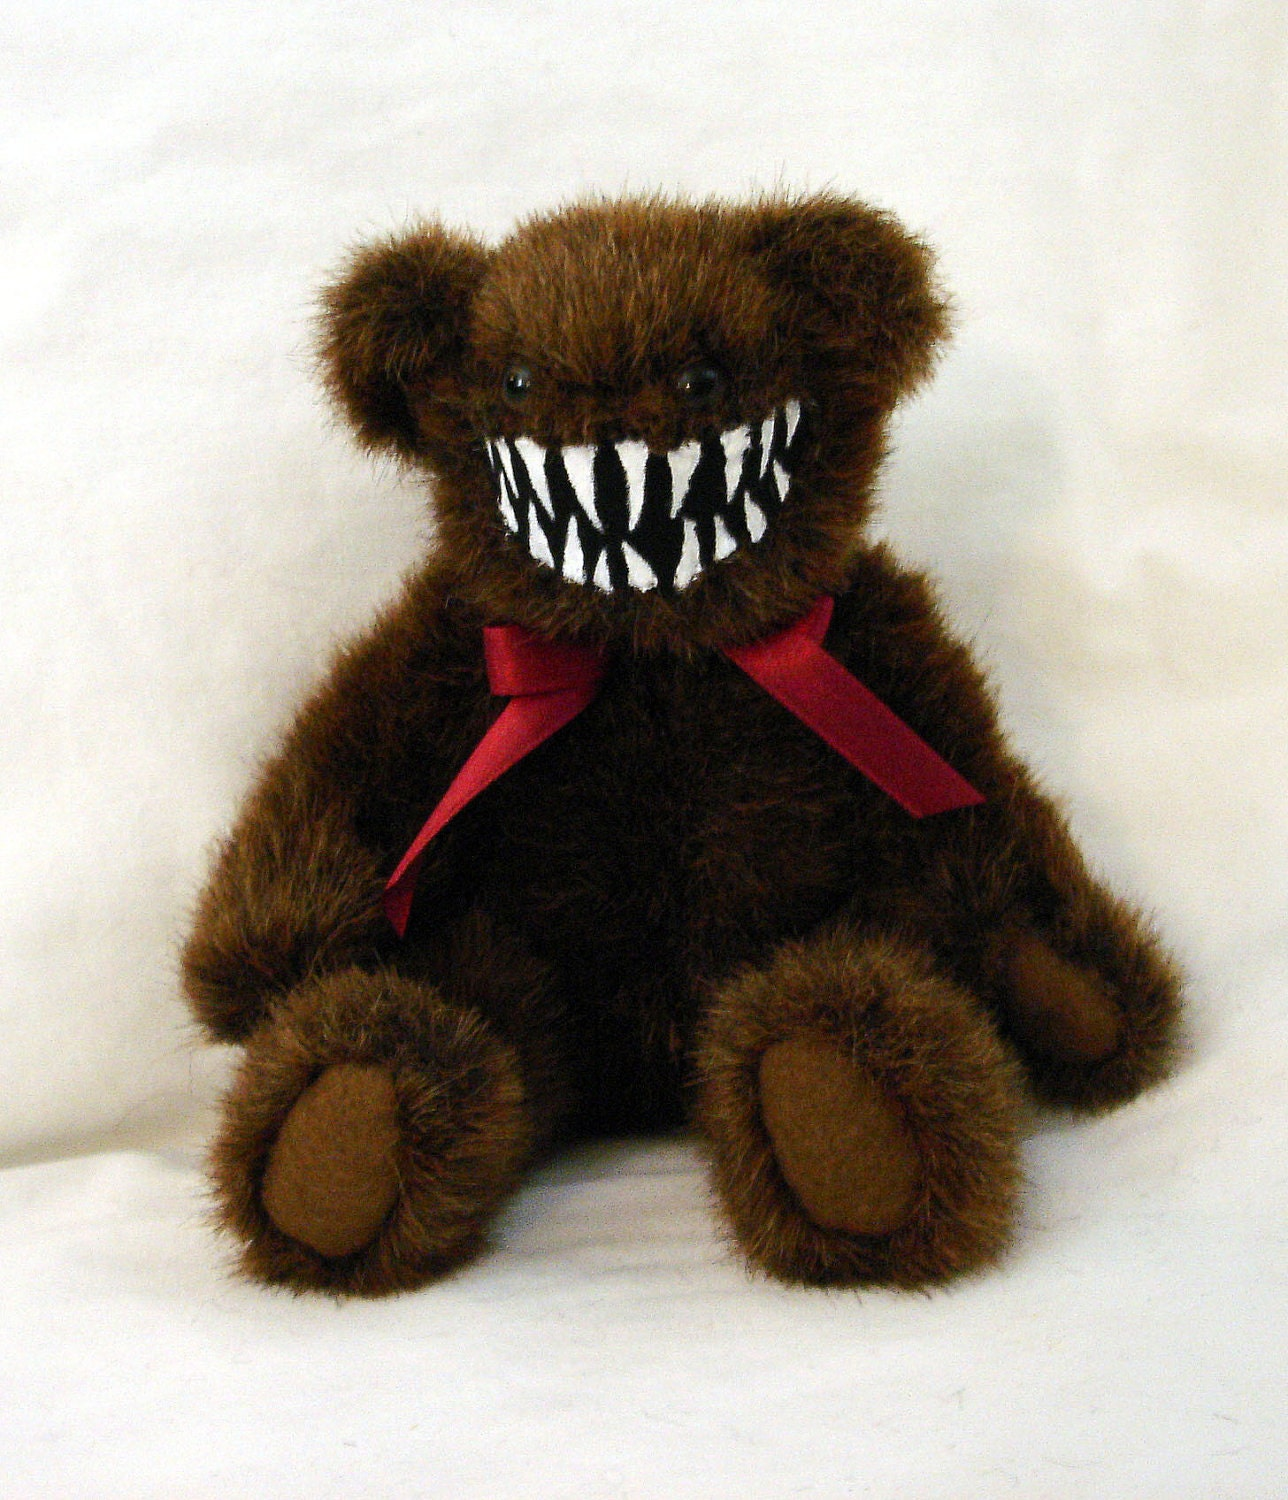 Mini Smiling Monster Teddy Bear Dark Brown And Toothsome